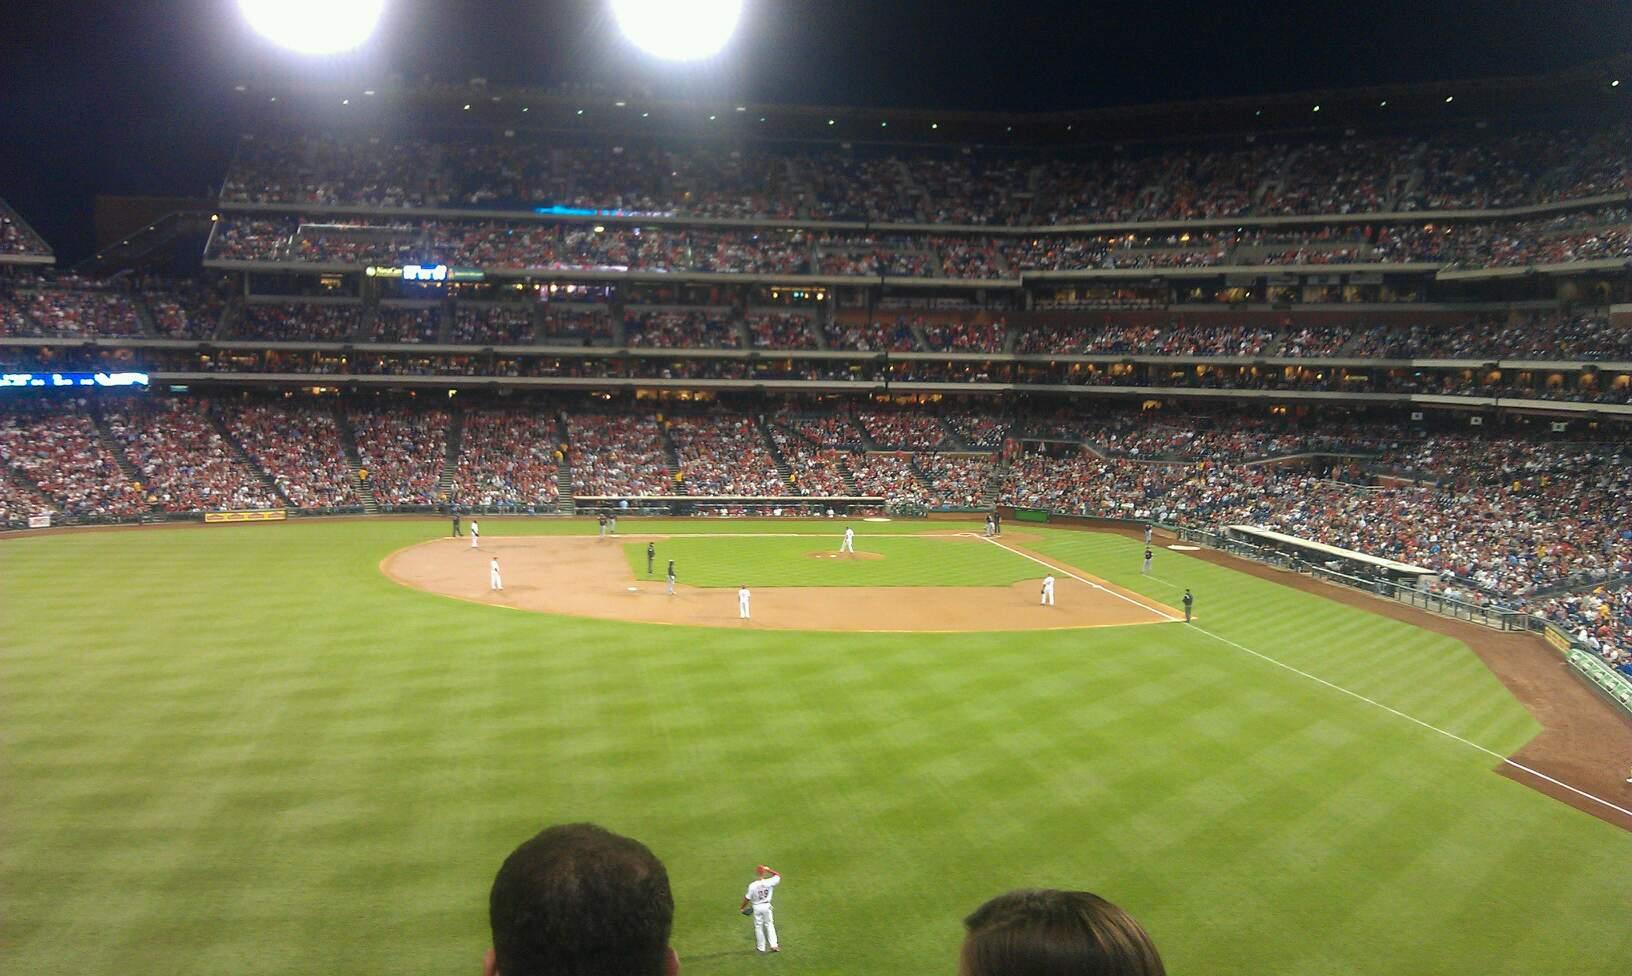 Citizens Bank Park Section 243 Row 3 Seat 13